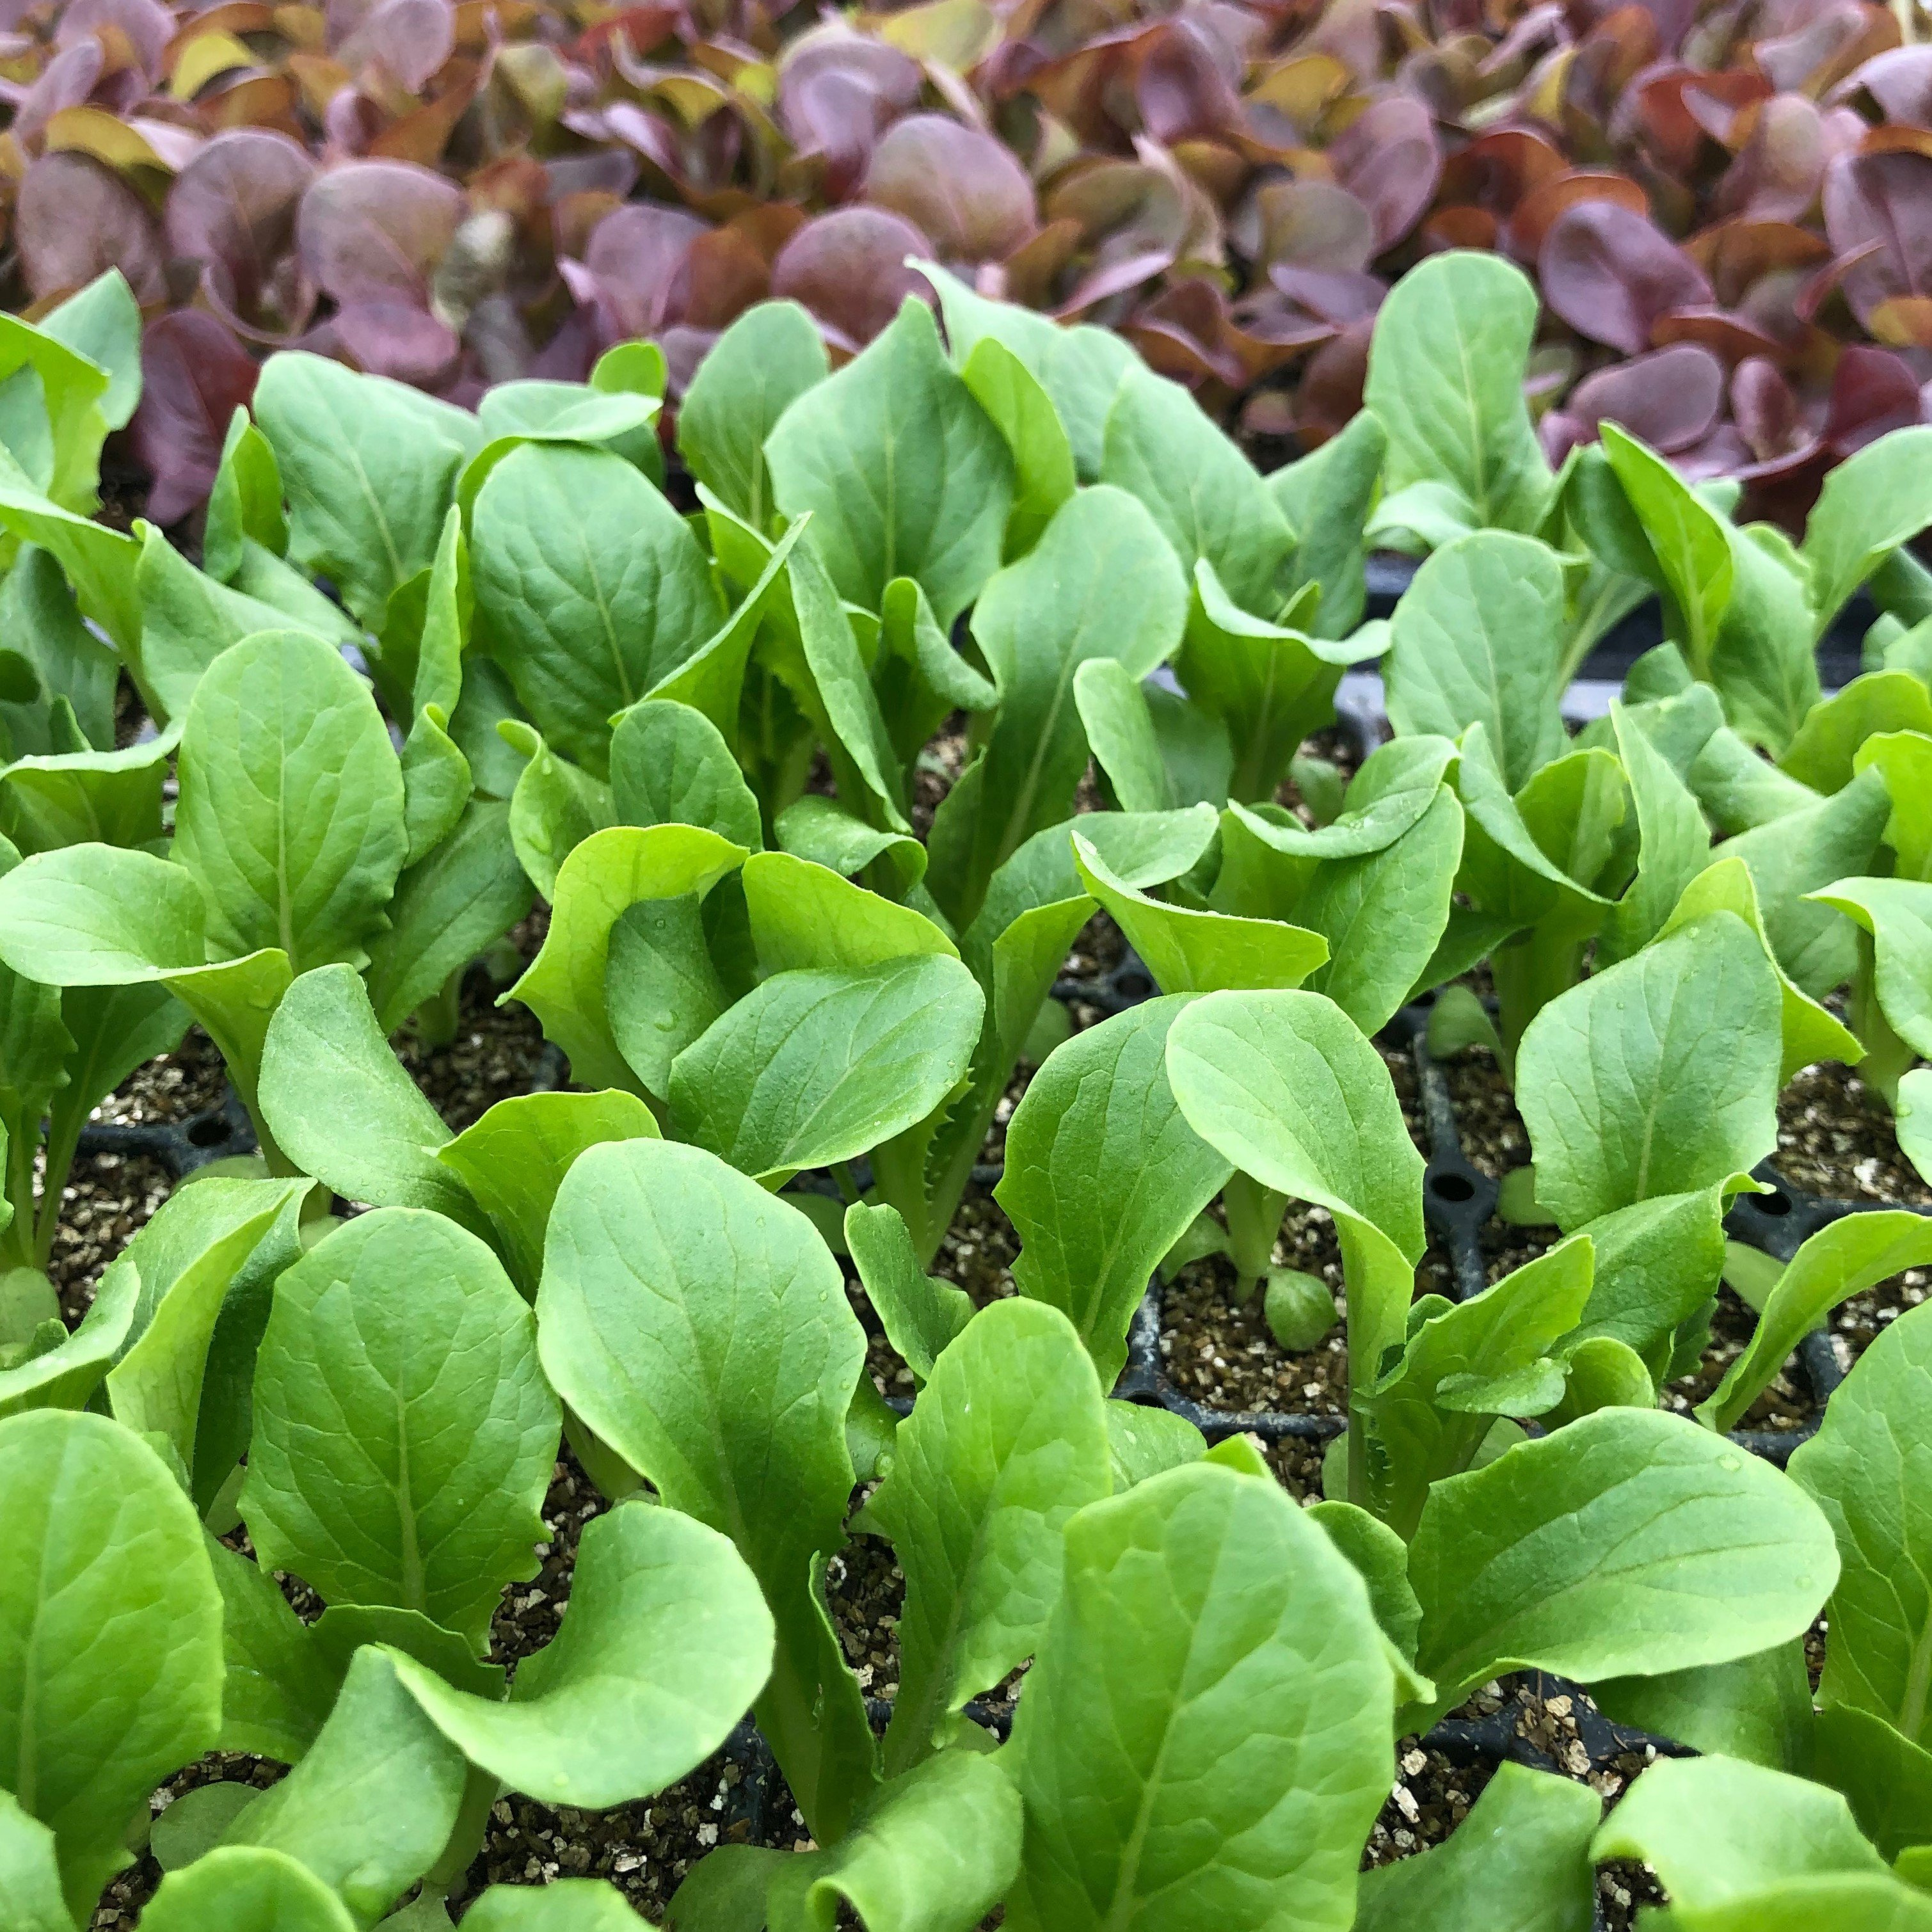 Farm Happenings for April 3, 2019: FIRST SPRING CSA!